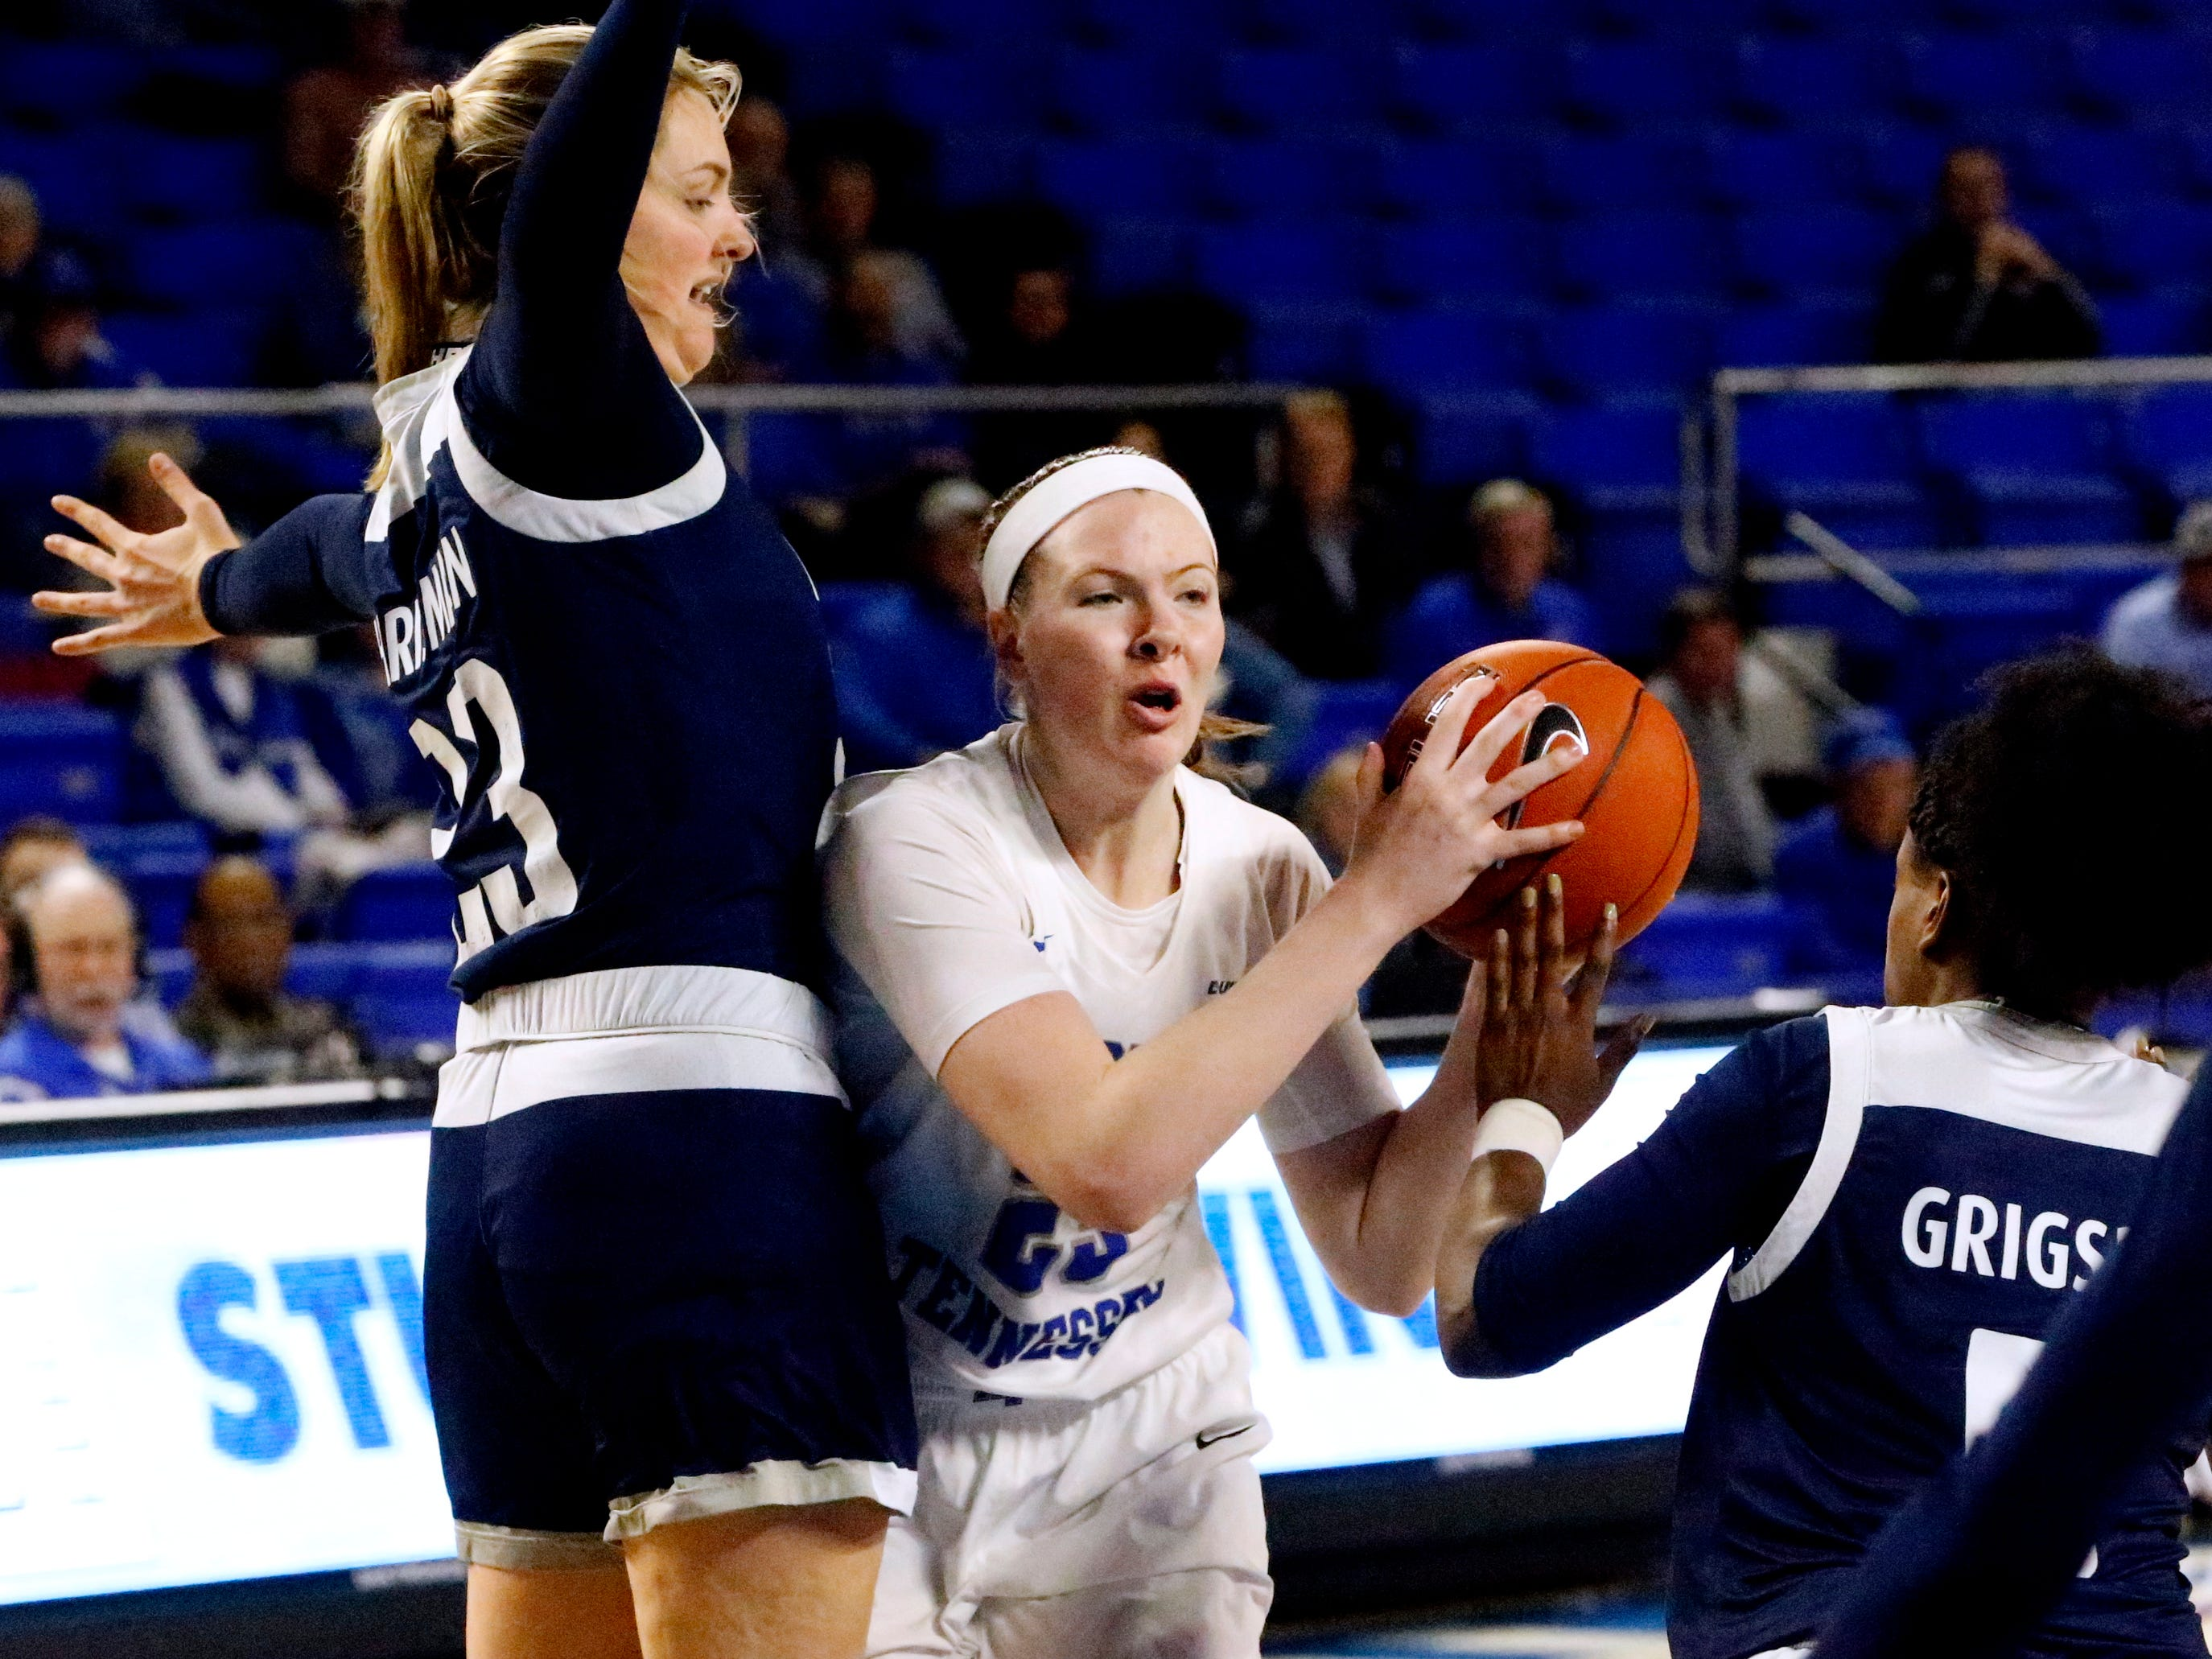 MTSU's guard Alexis Whittington (23) looks to pass the ball as Rice's center Alexah Chrisman (23) and Rice's guard Lauren Grigsby (5) both cover her on Thursday Jan. 24, 2019.